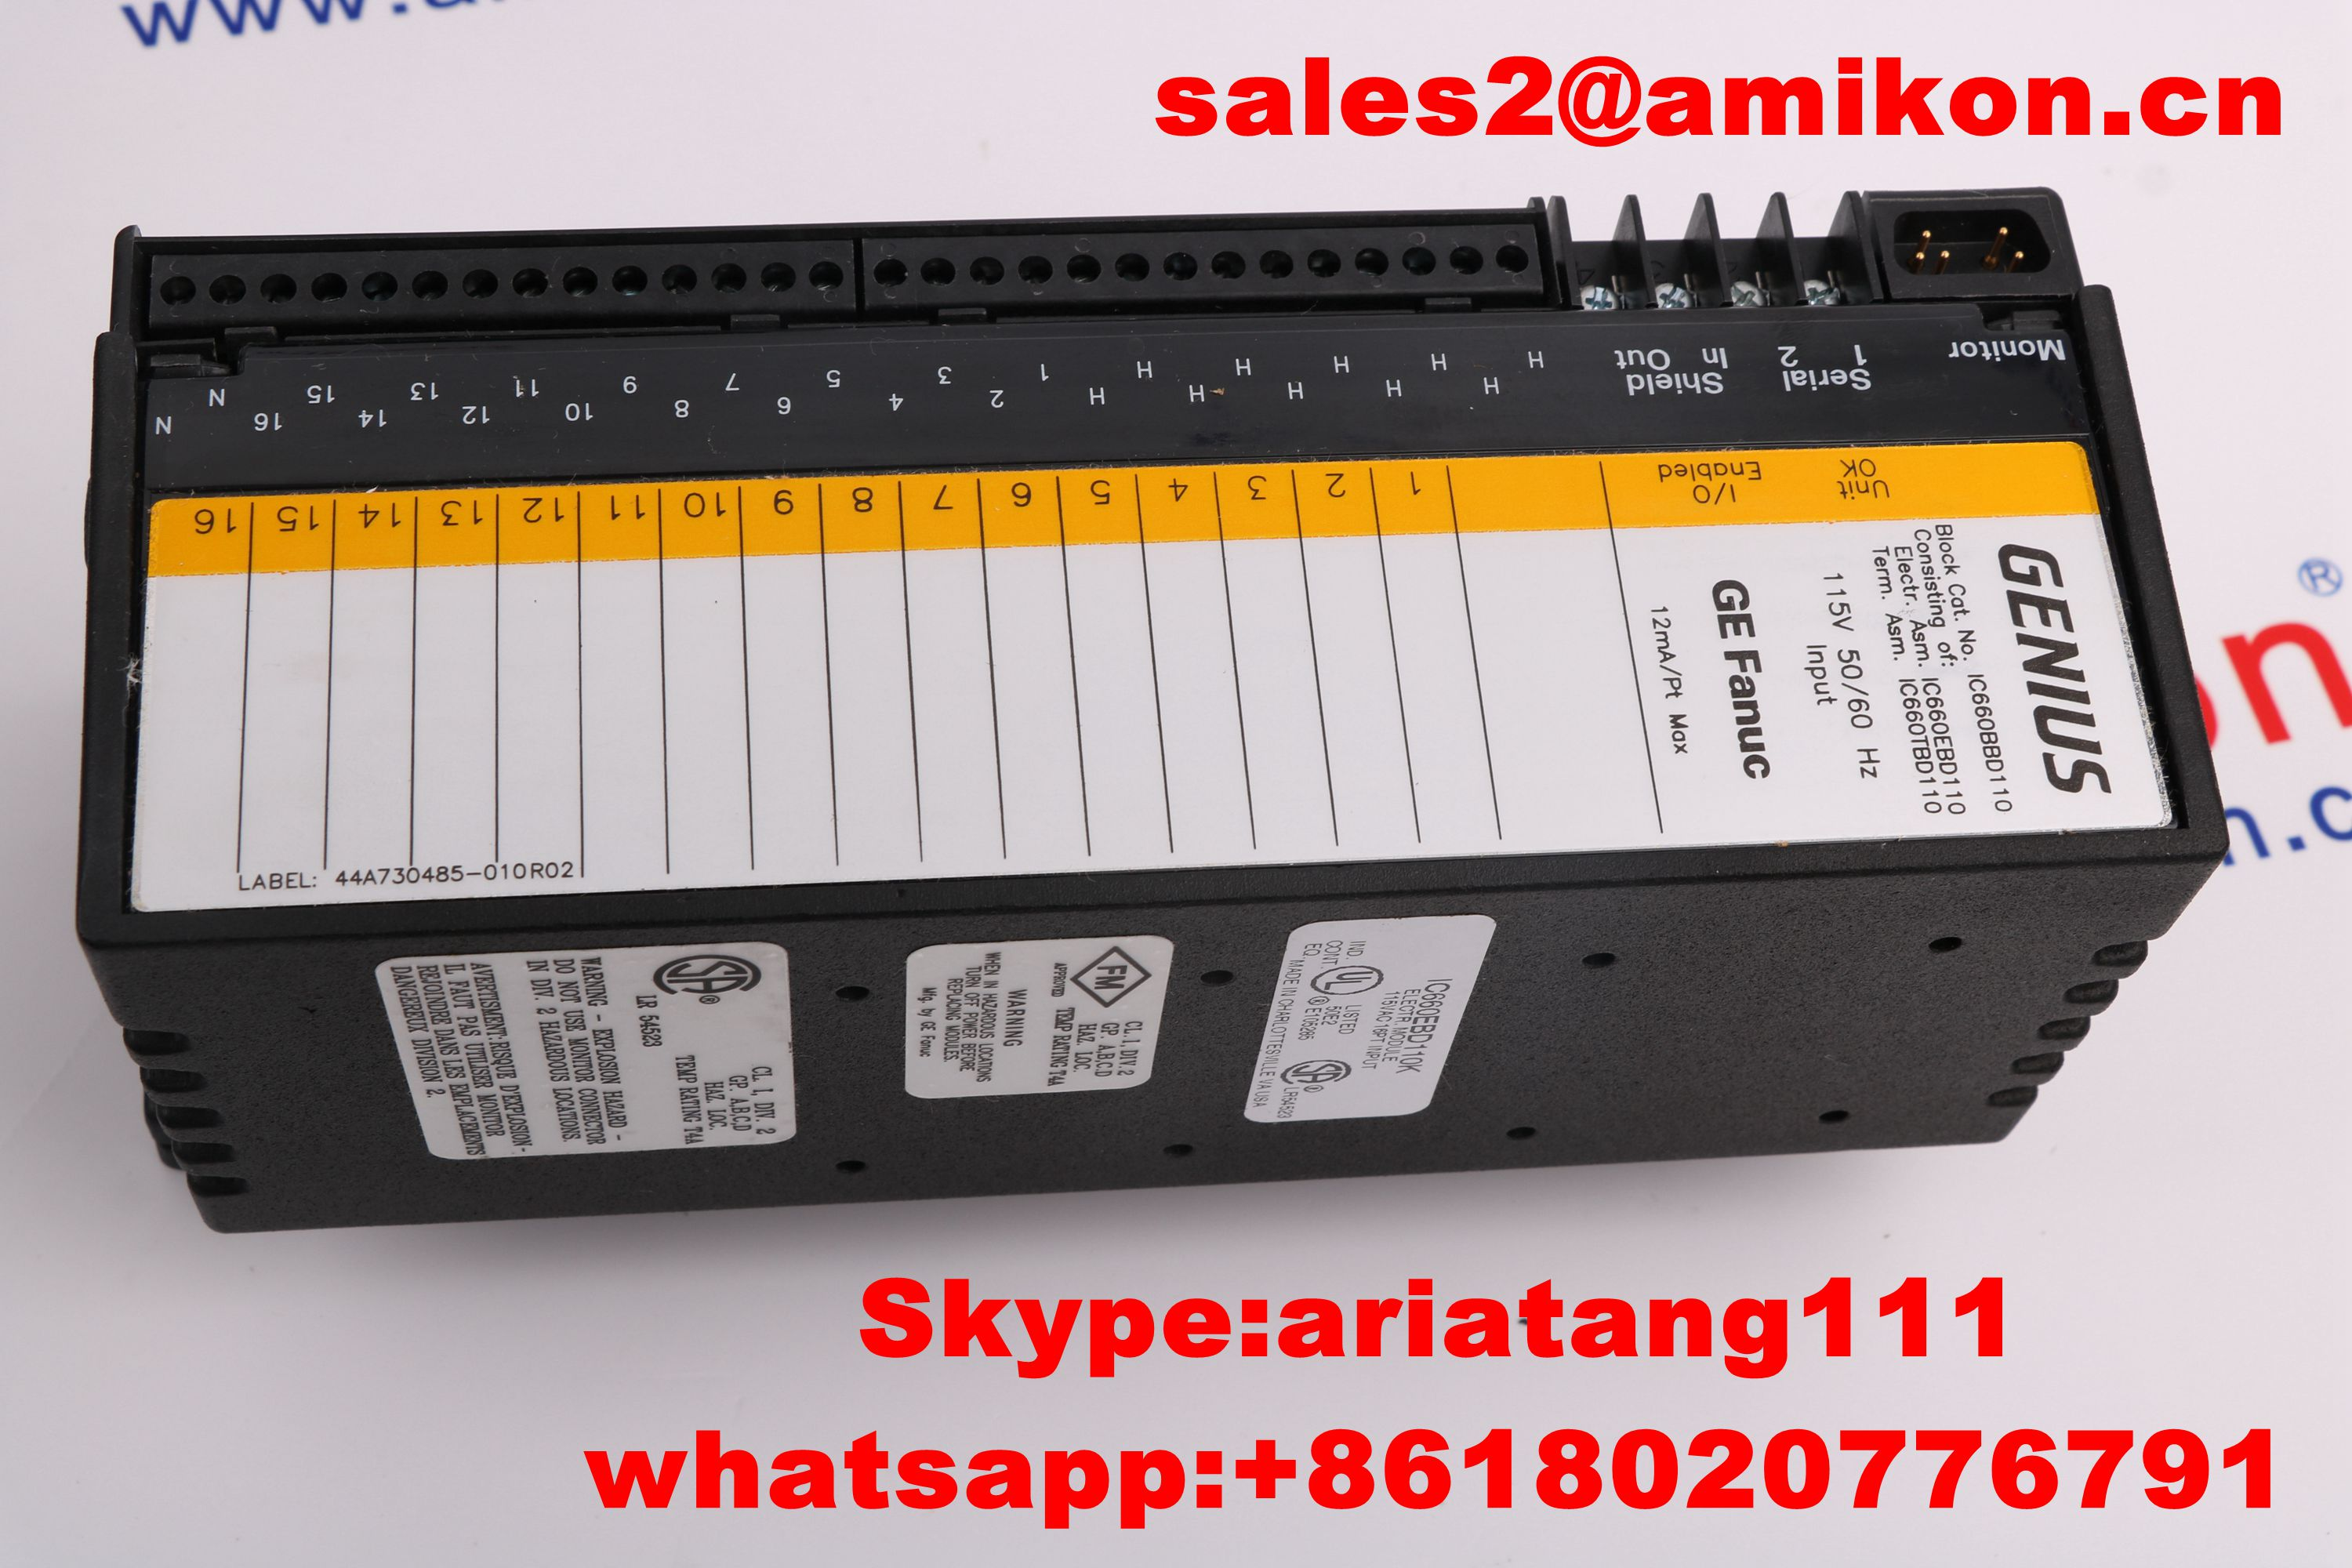 GE IC693PWR321P PLC DCS System Distributor sales2@amikon.cn